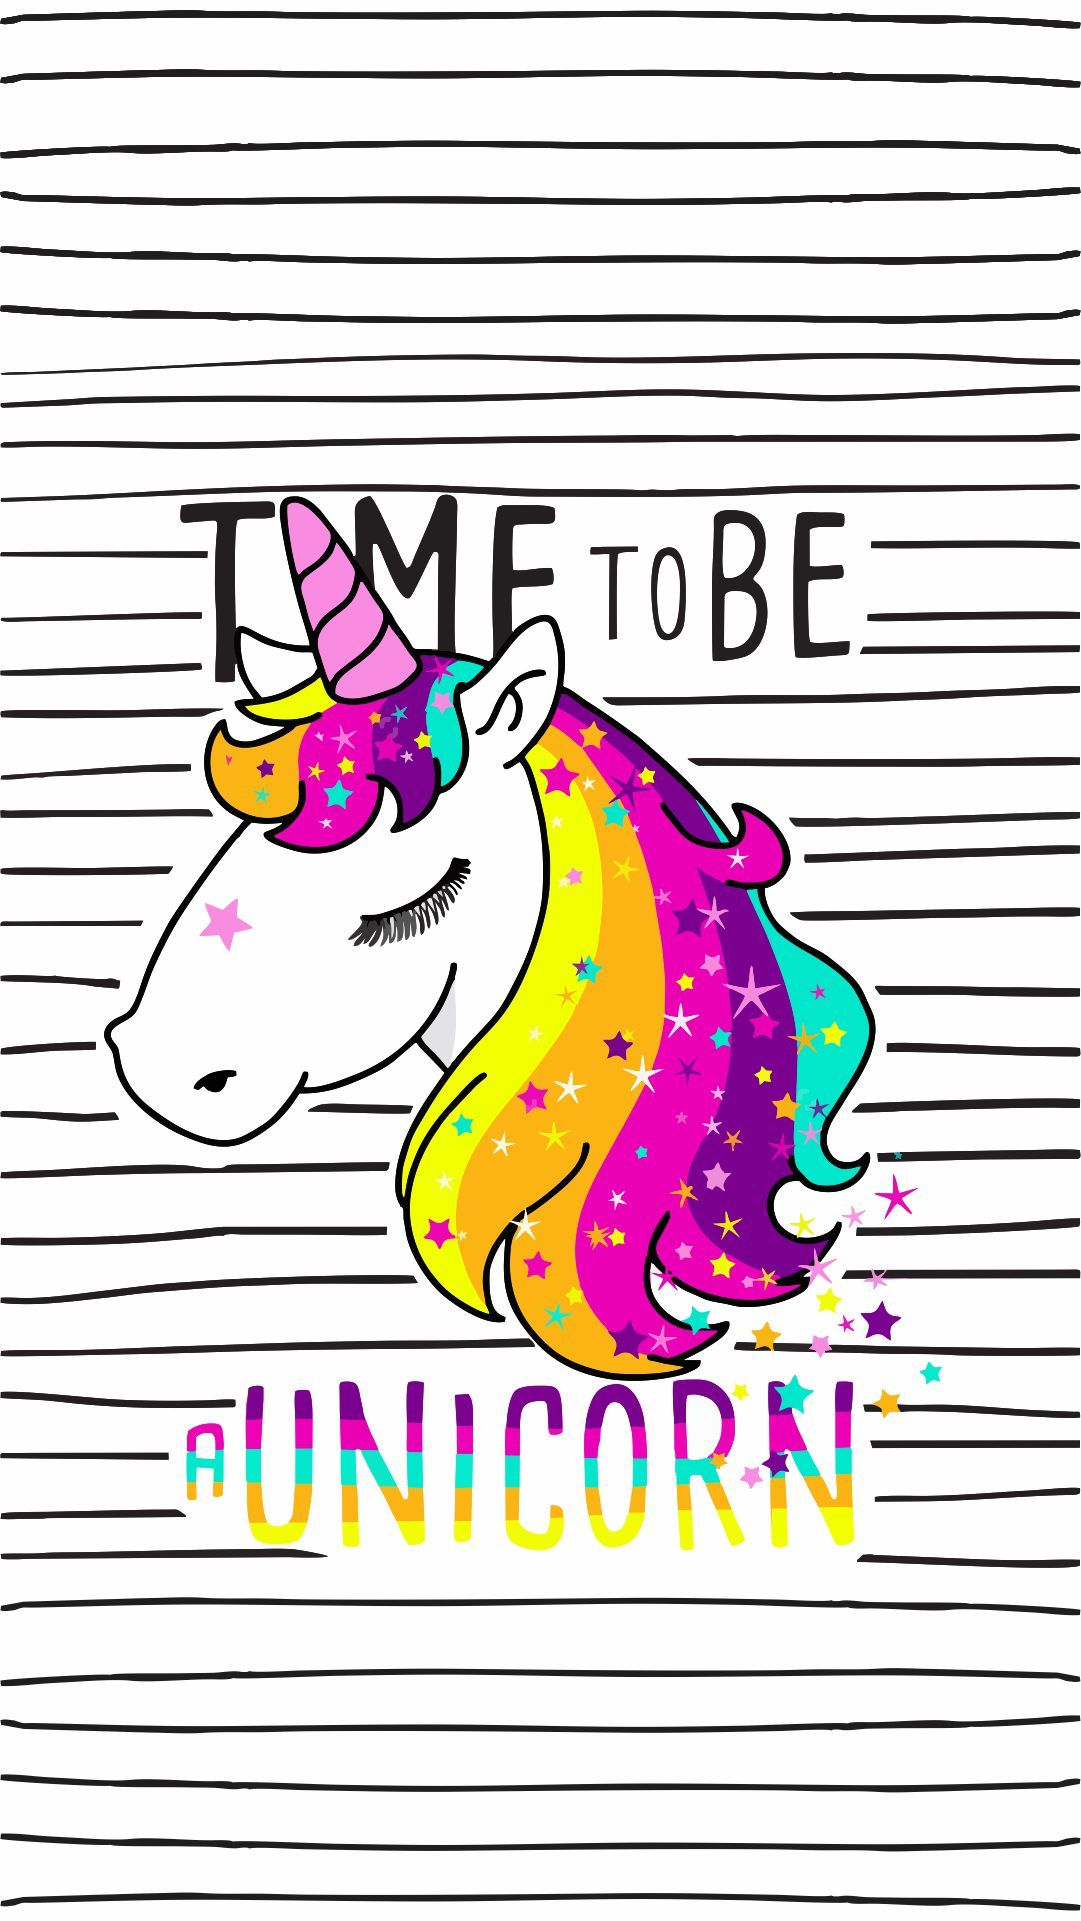 Florenciaofc izimler pinterest unicorns wallpaper for Louisiana id template